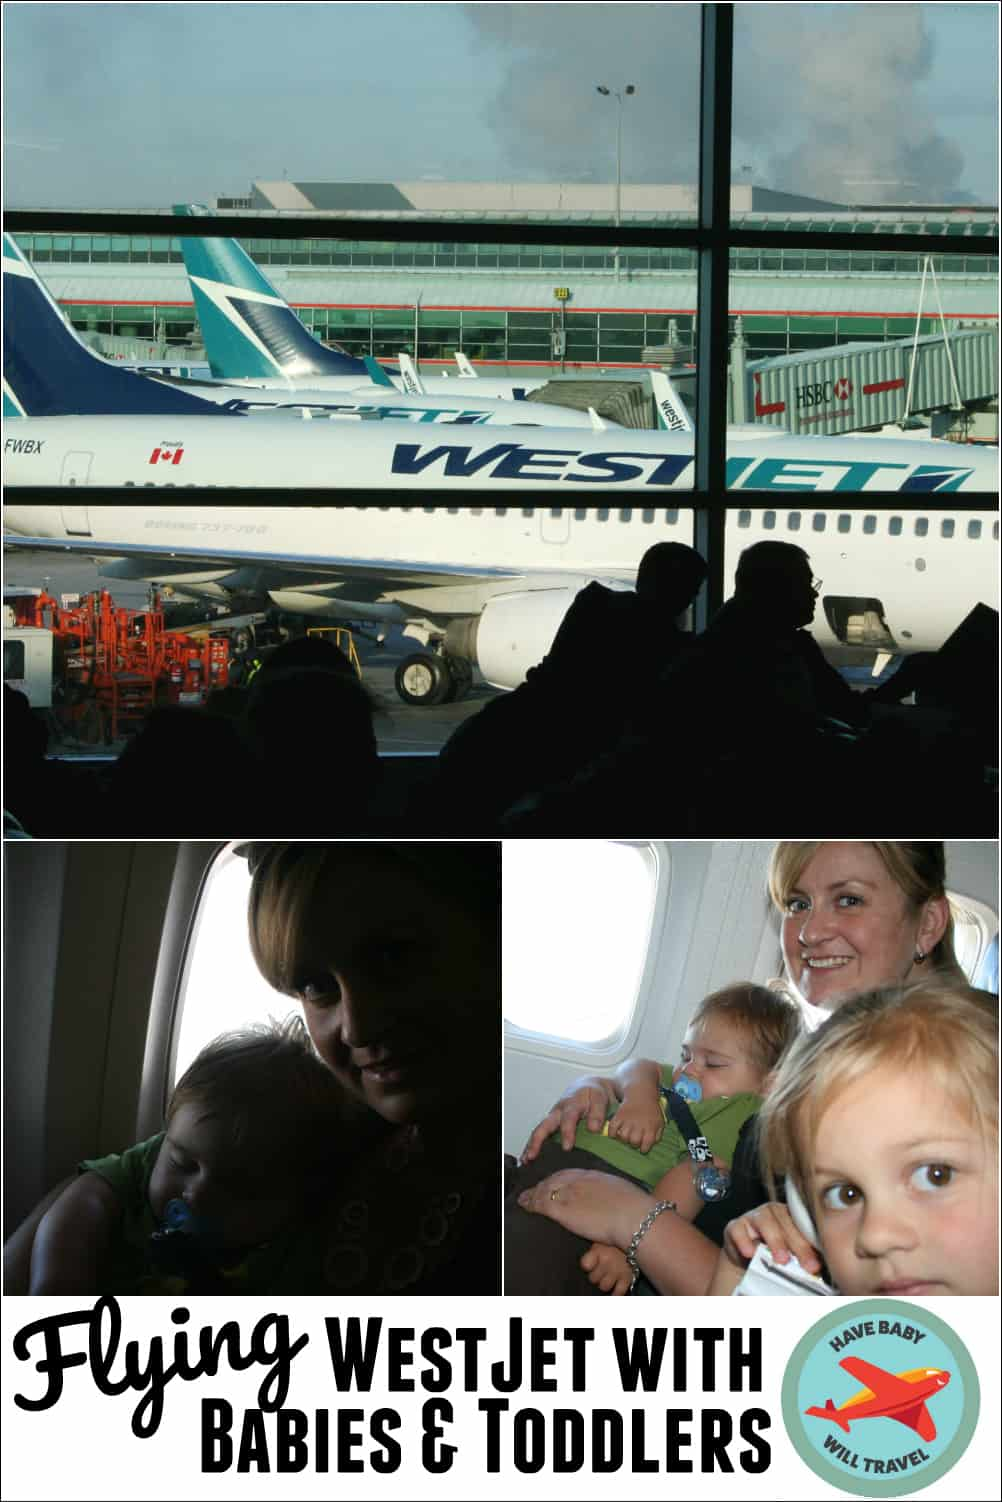 Do I Need To Notify Airline If Traveling With Infant